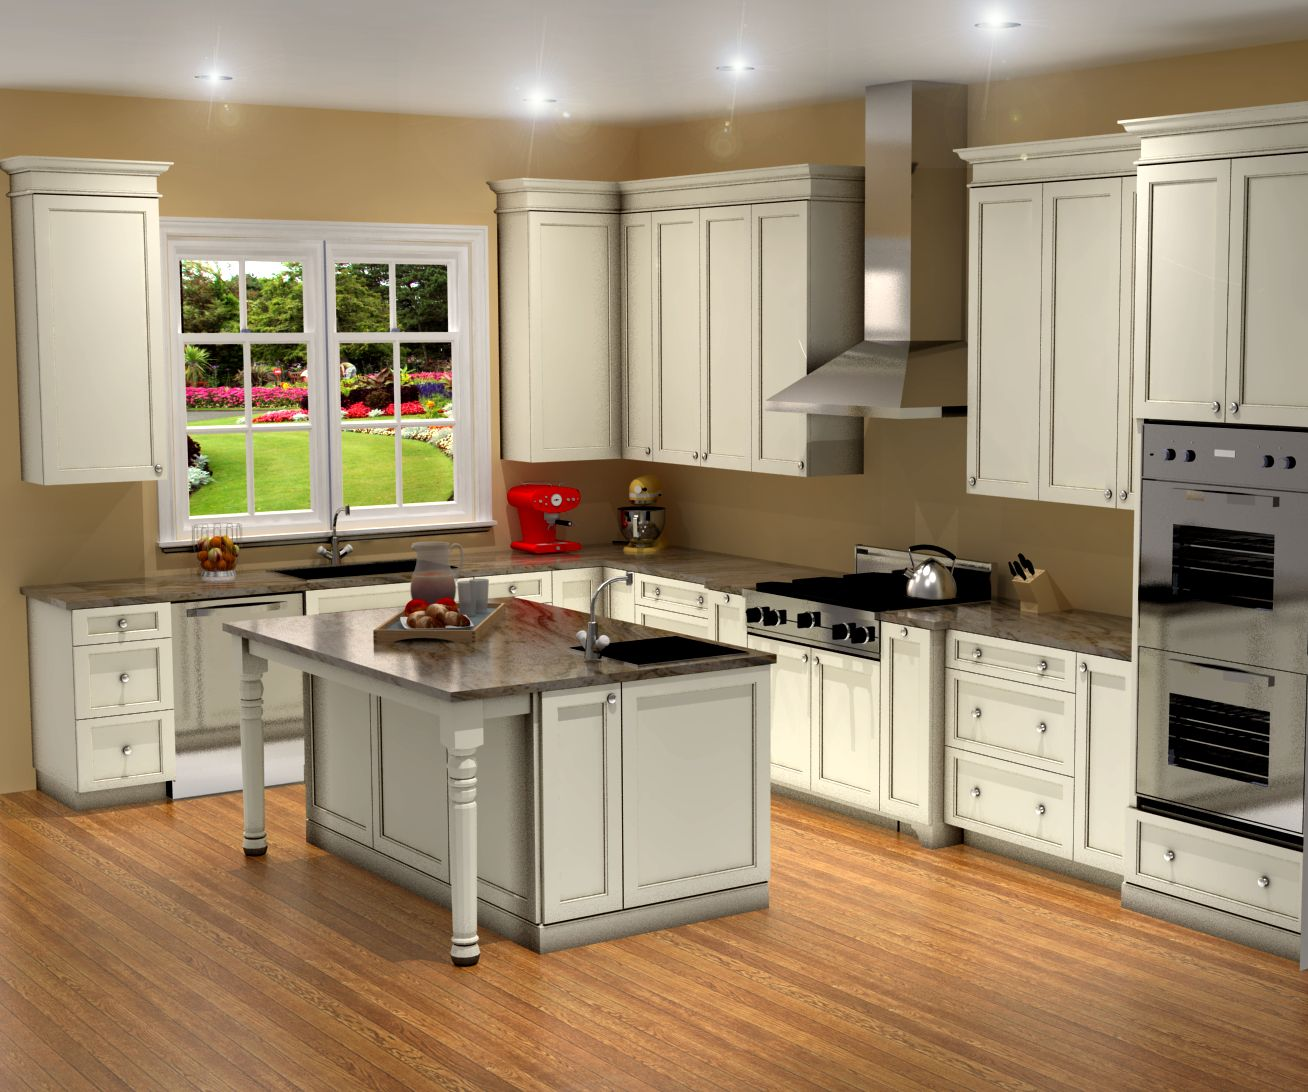 Traditional white kitchen design 3d rendering nick Www house kitchen design